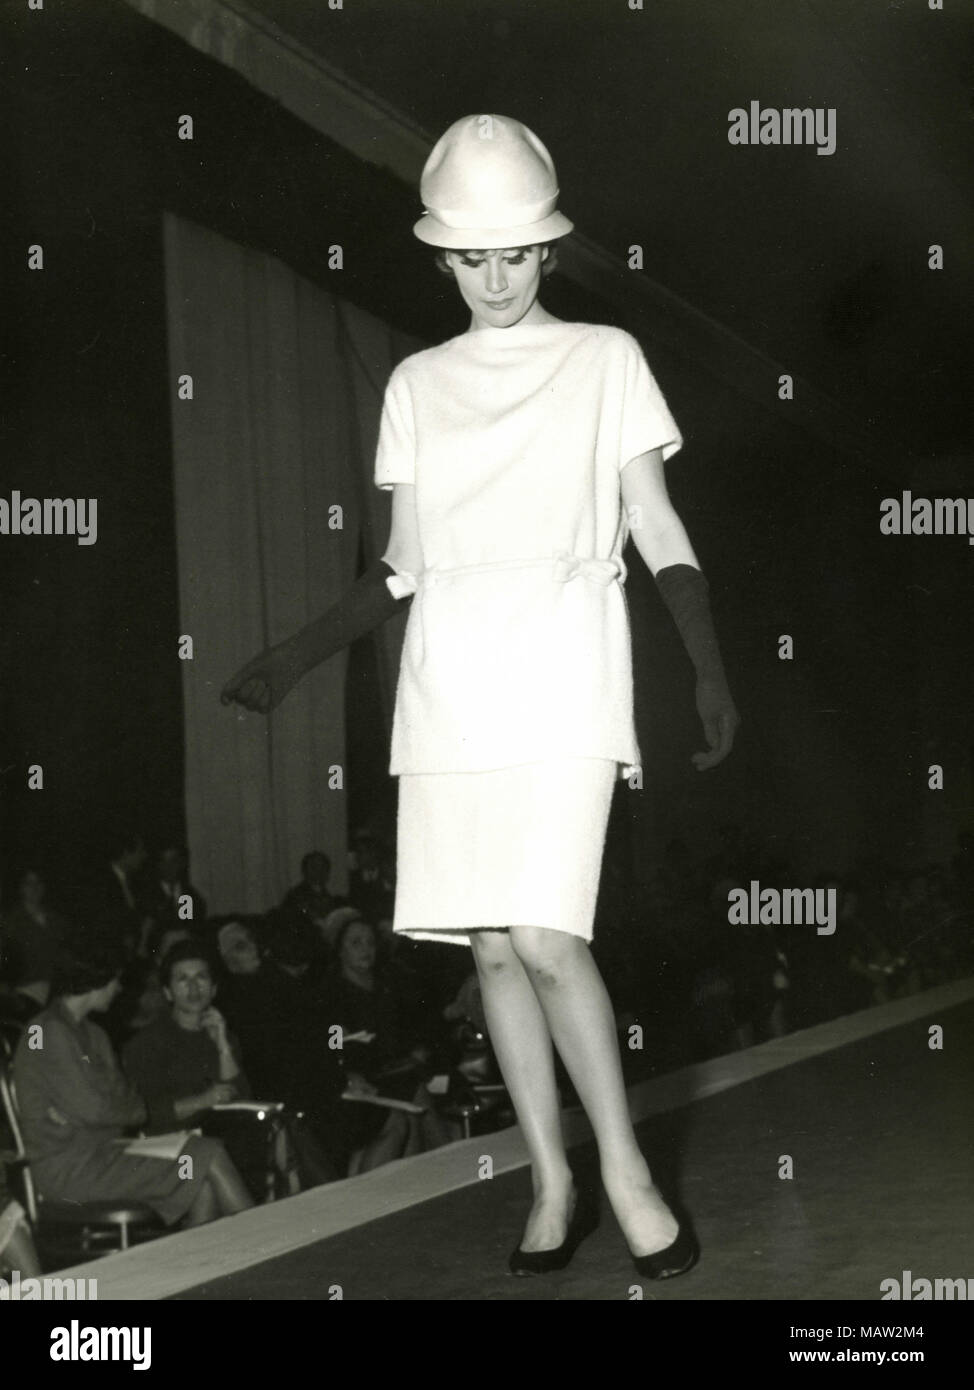 Model from the sixties walking on the catwalk, Italy - Stock Image